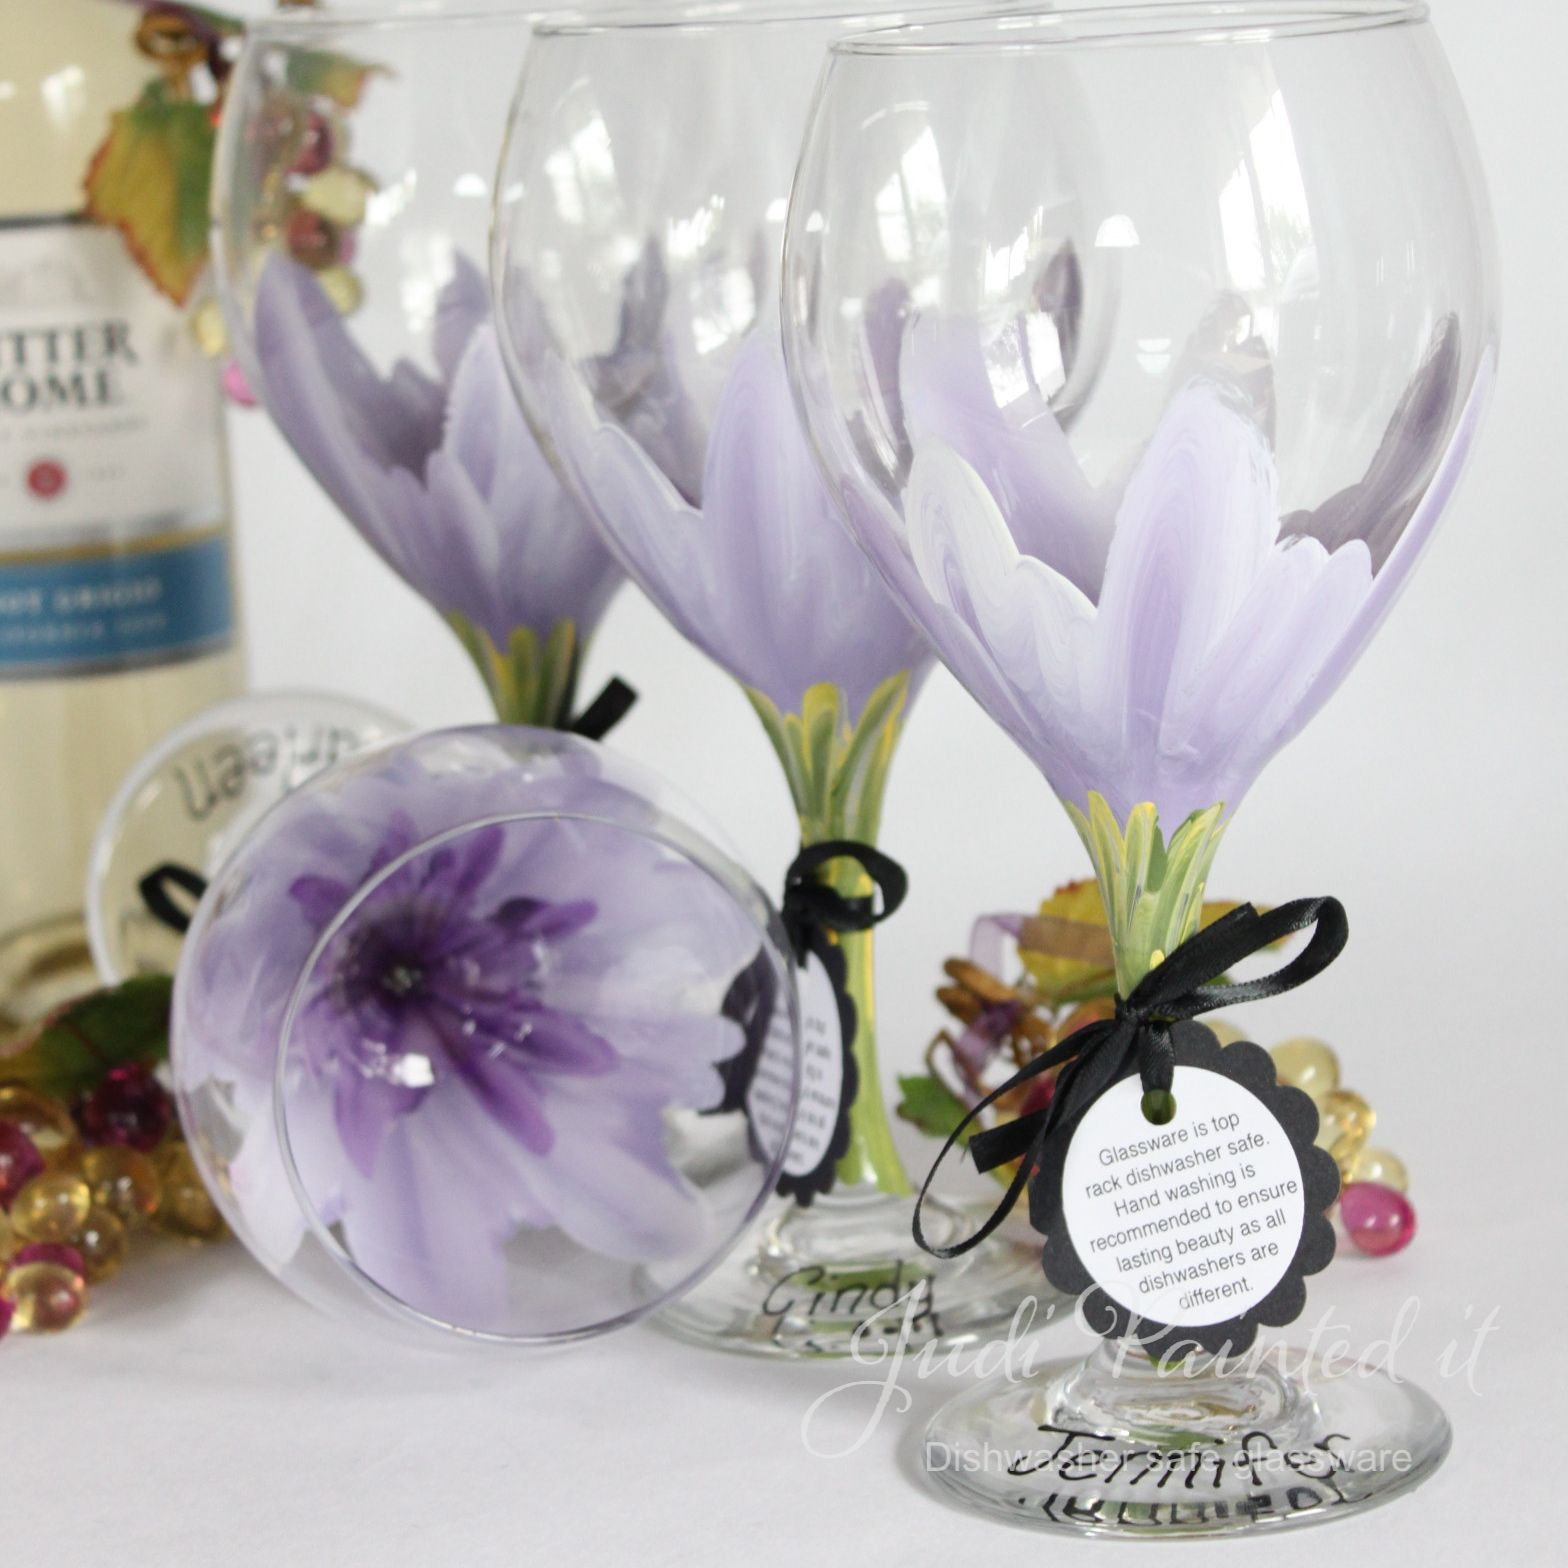 painted+flowers+wine+glasses   ... show girl of flowers judi decided to get creative and bring to life